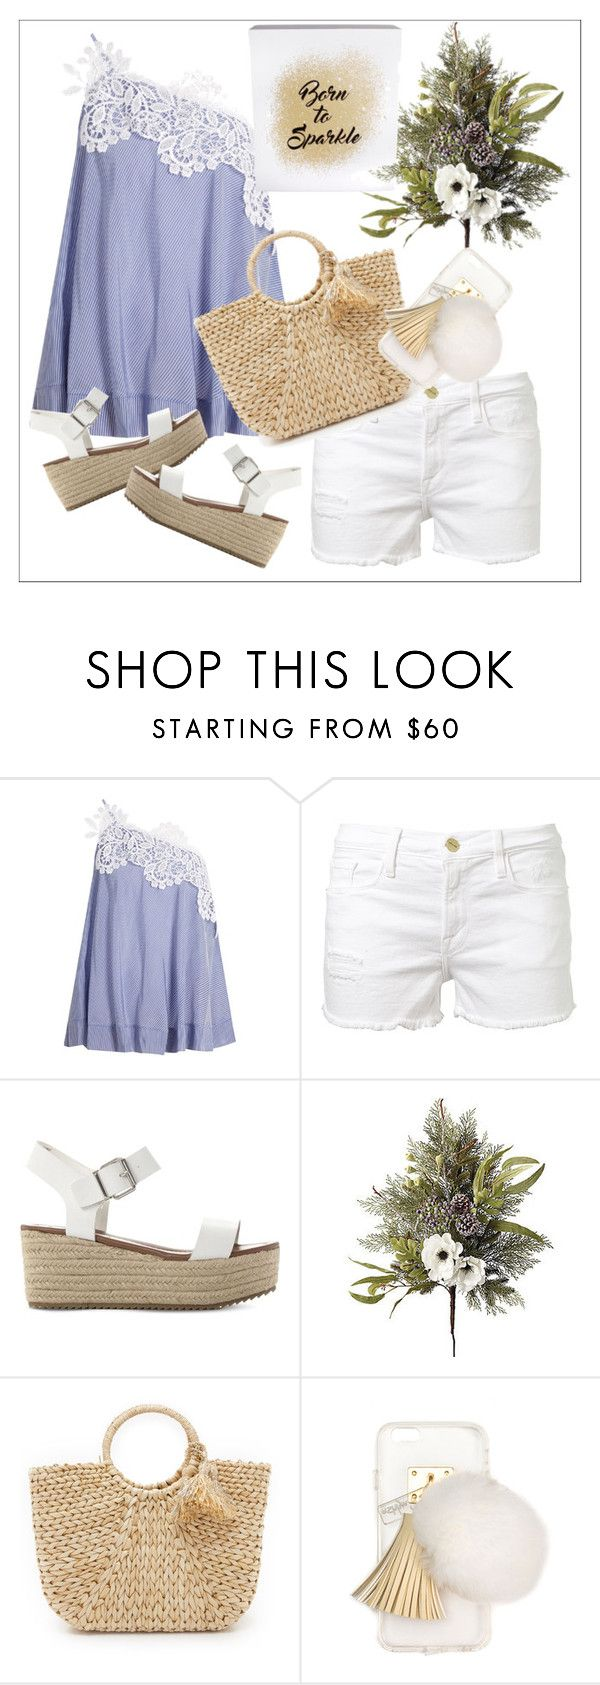 """Untitled #230"" by chanlee-luv ❤ liked on Polyvore featuring lila.eugenie, Frame Denim, Steve Madden, Frontgate, Hat Attack, Ashlyn'd and Erica Lyons"